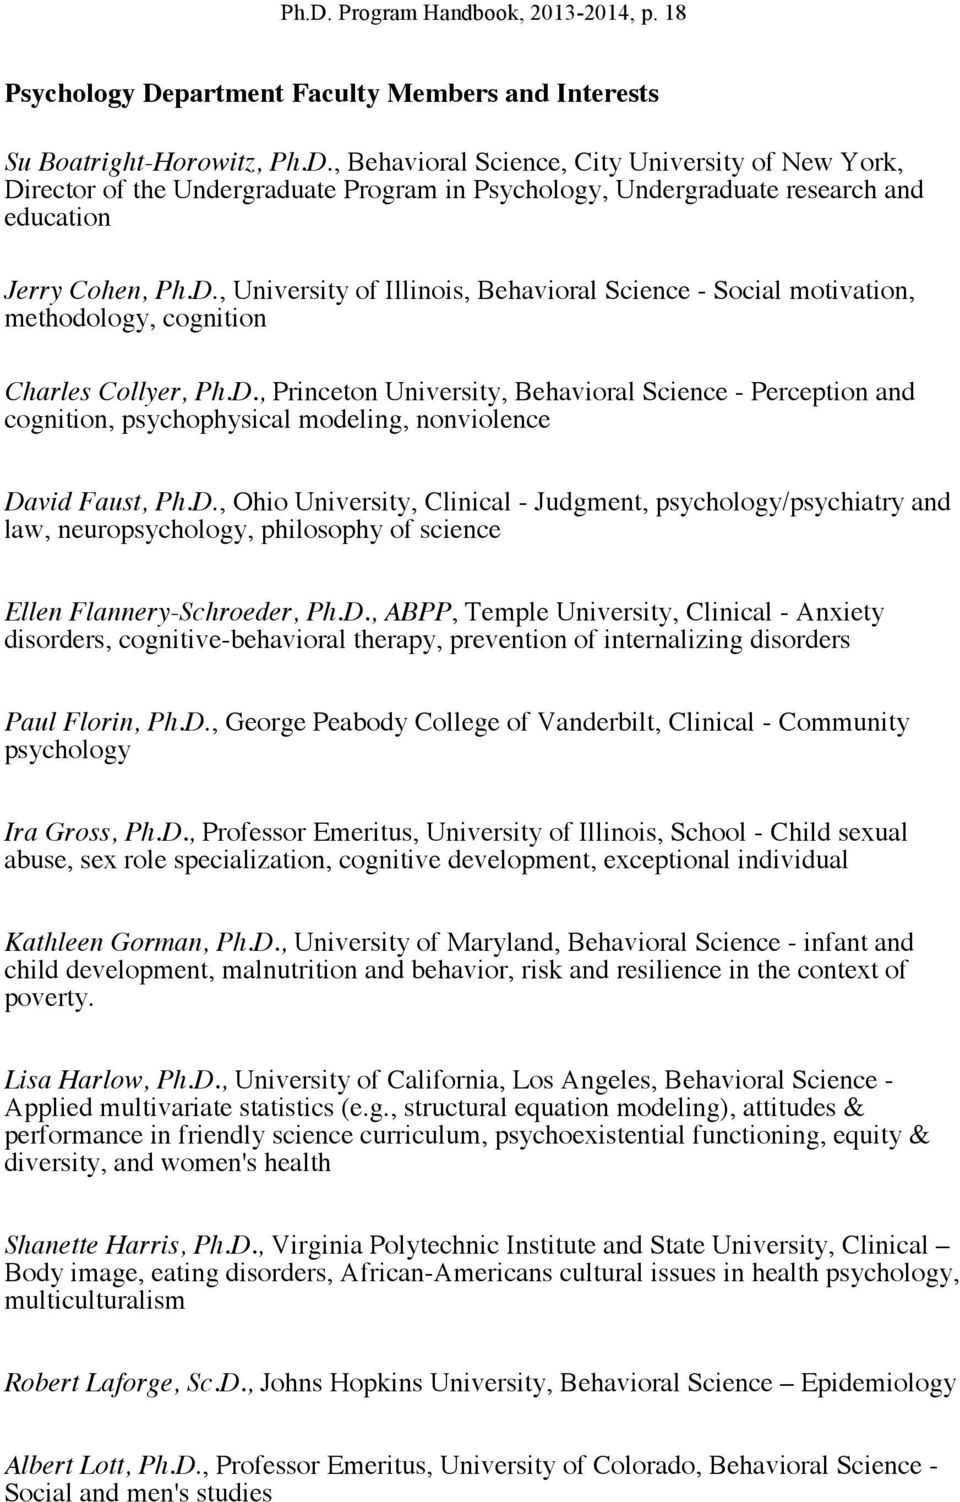 D., Ohio University, Clinical - Judgment, psychology/psychiatry and law, neuropsychology, philosophy of science Ellen Flannery-Schroeder, Ph.D., ABPP, Temple University, Clinical - Anxiety disorders, cognitive-behavioral therapy, prevention of internalizing disorders Paul Florin, Ph.